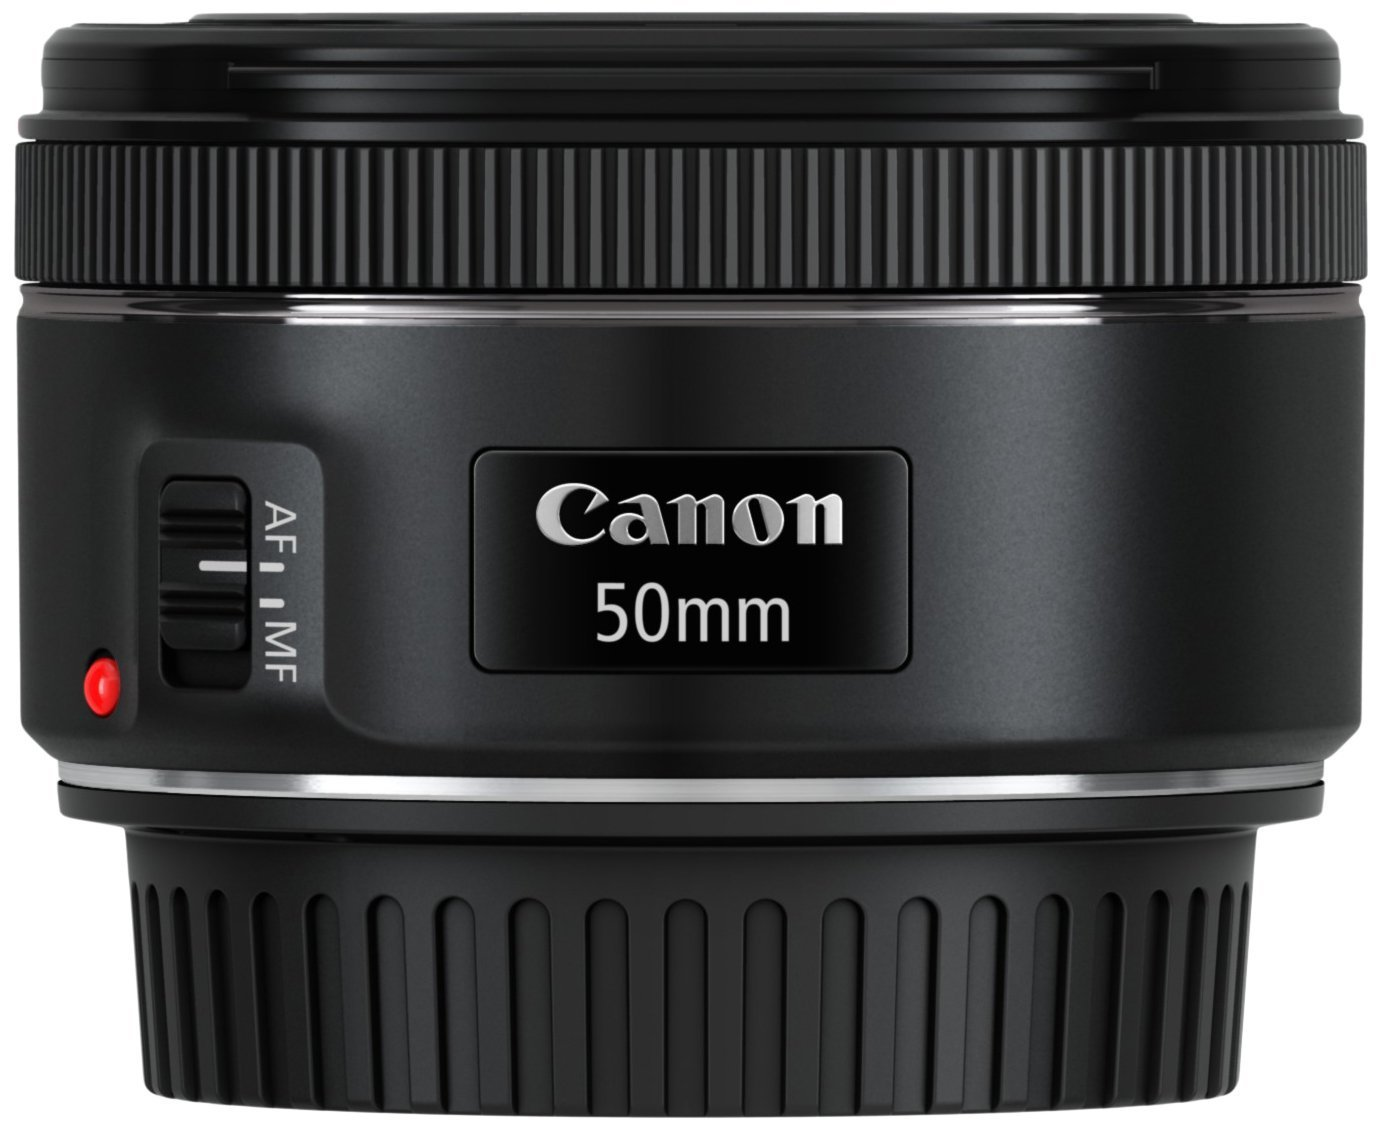 canon-50mm-lens-amazon-lottie-lamour